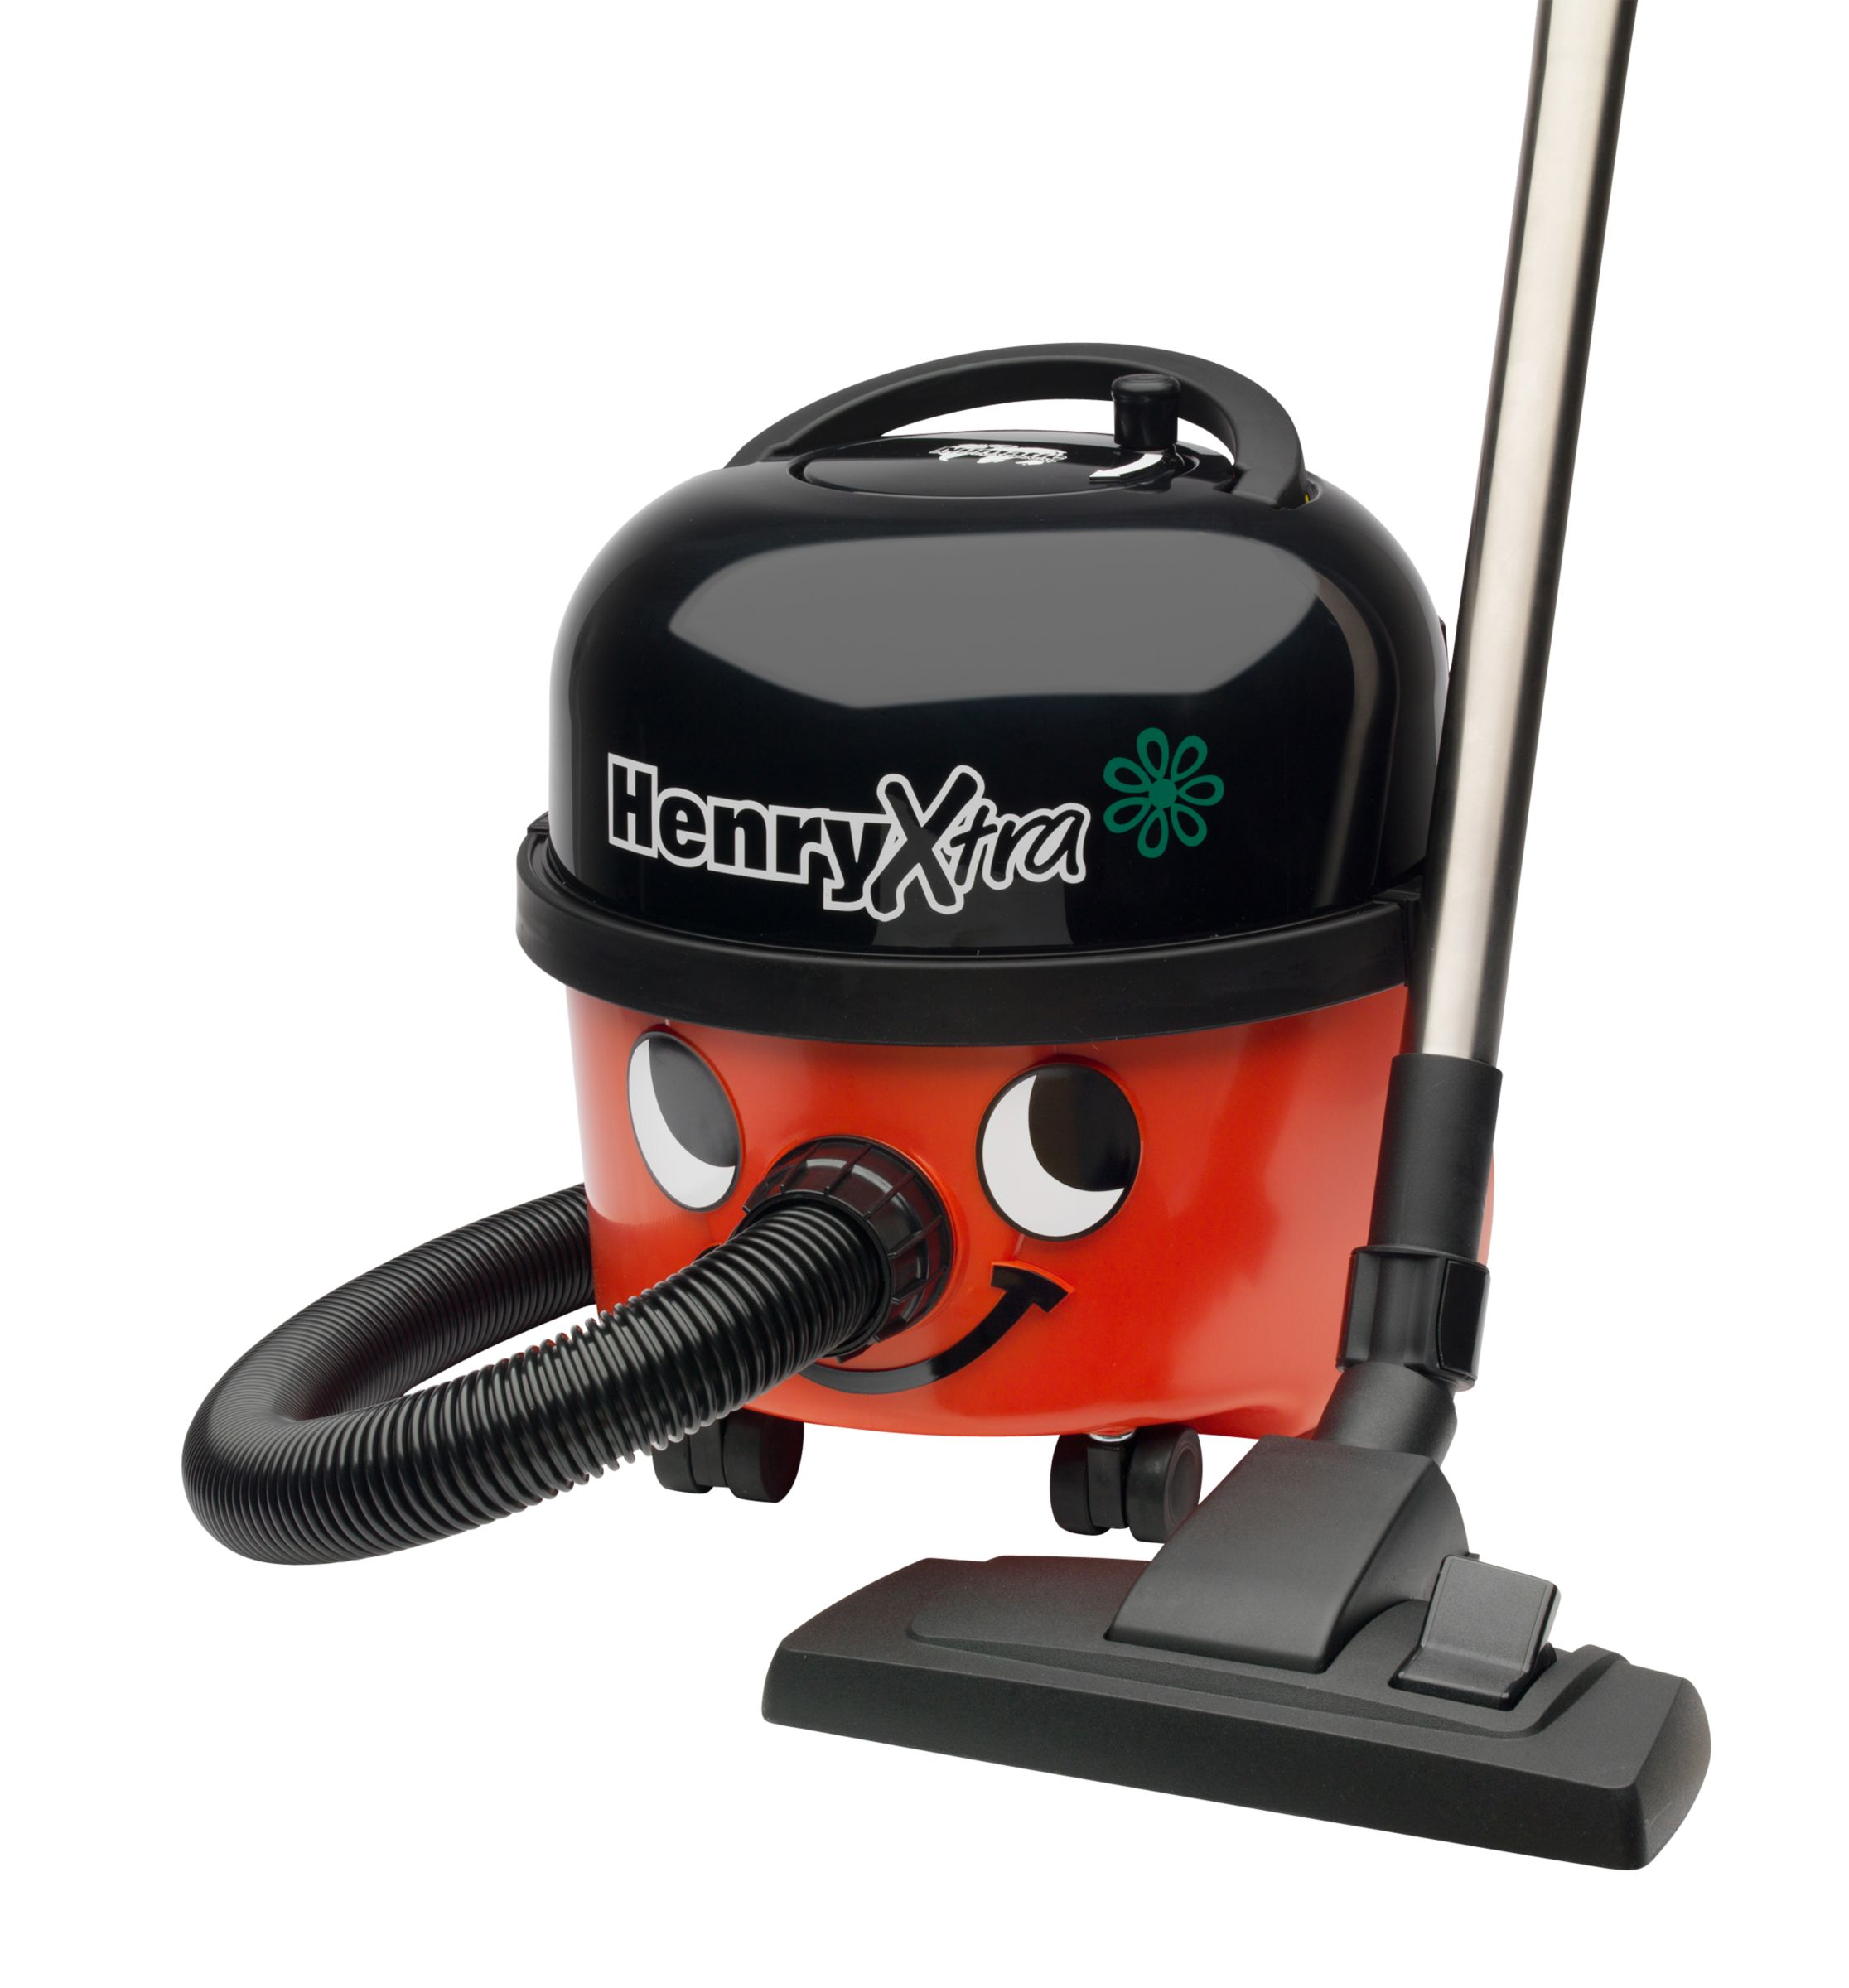 HVX200A2 Henry Xtra Vacuum Cleaner